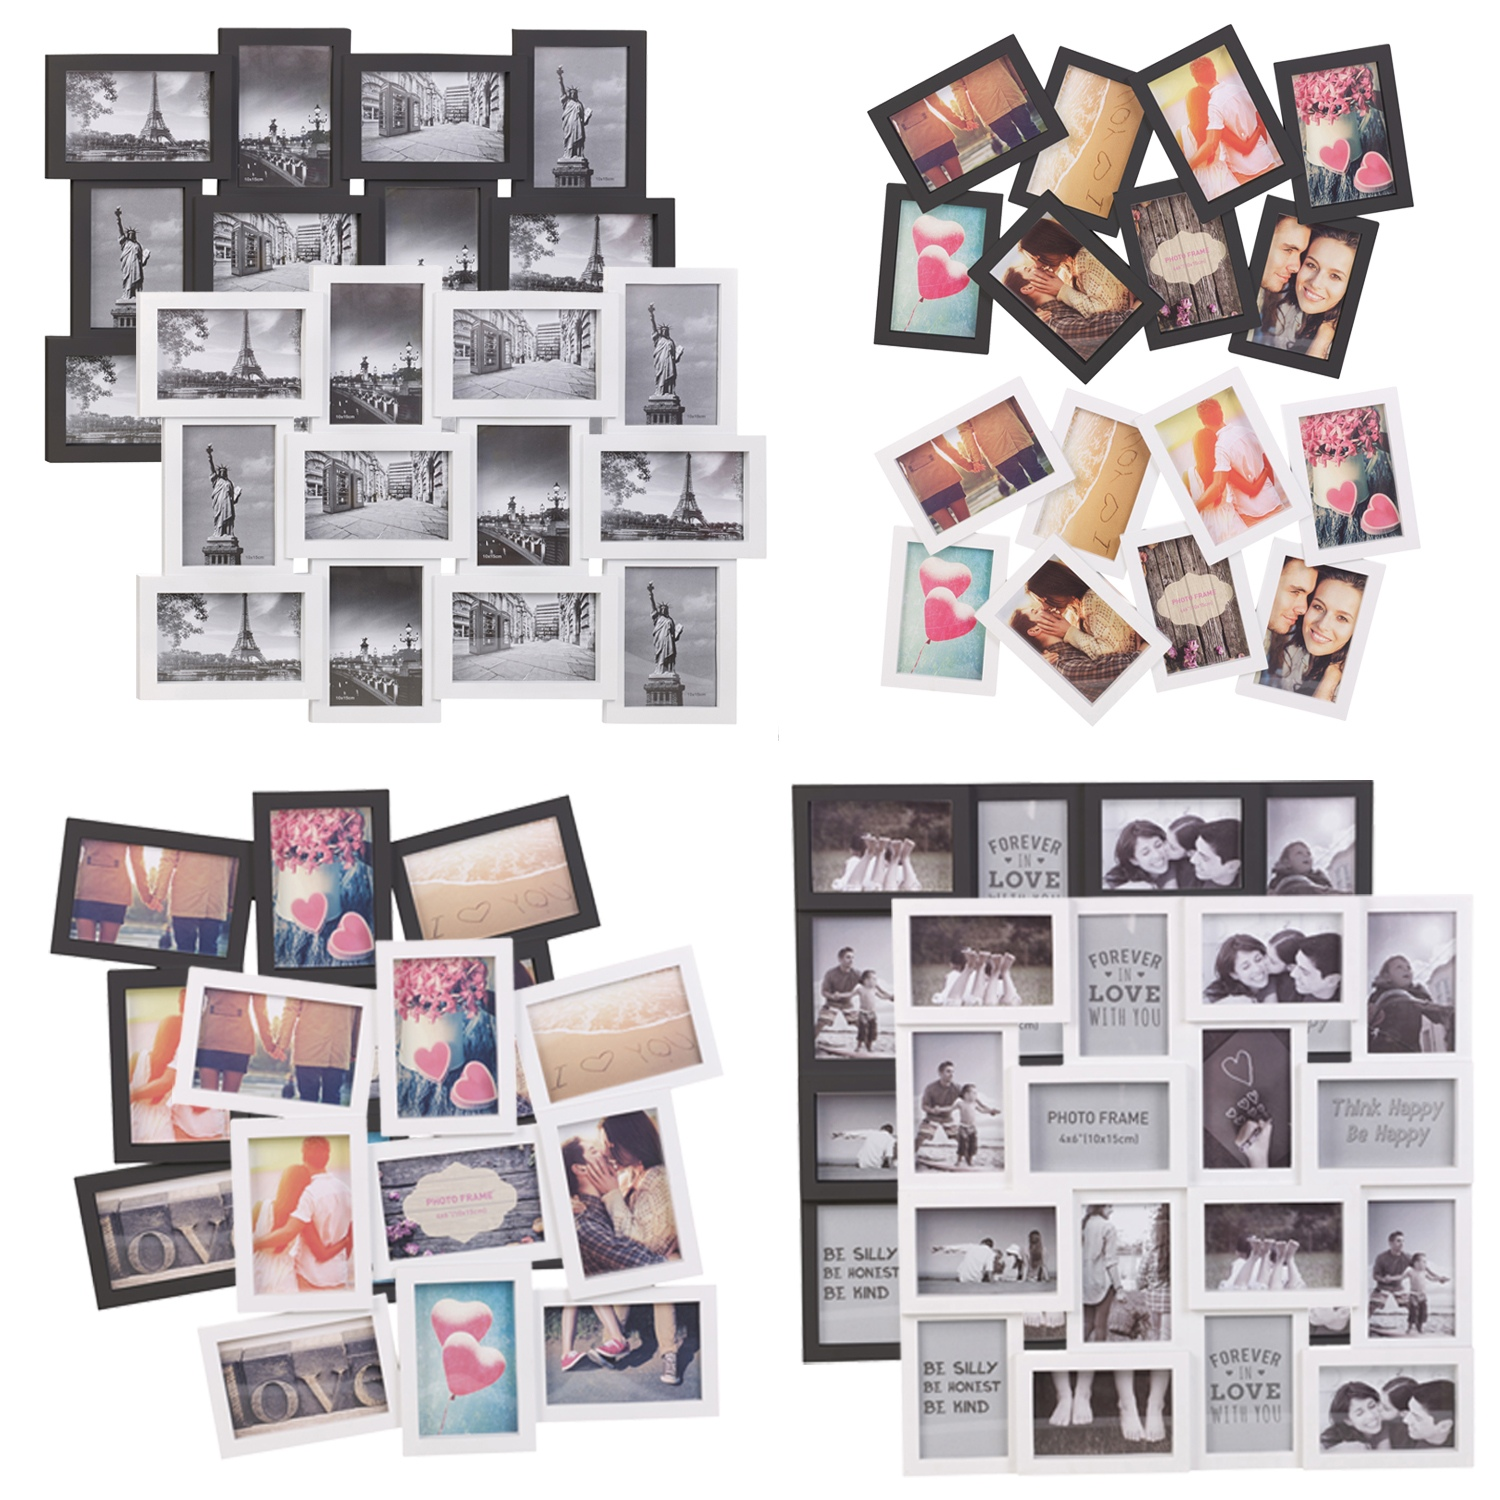 8 12 16 photos large multi picture photo frame collage aperture wall decoration ebay. Black Bedroom Furniture Sets. Home Design Ideas